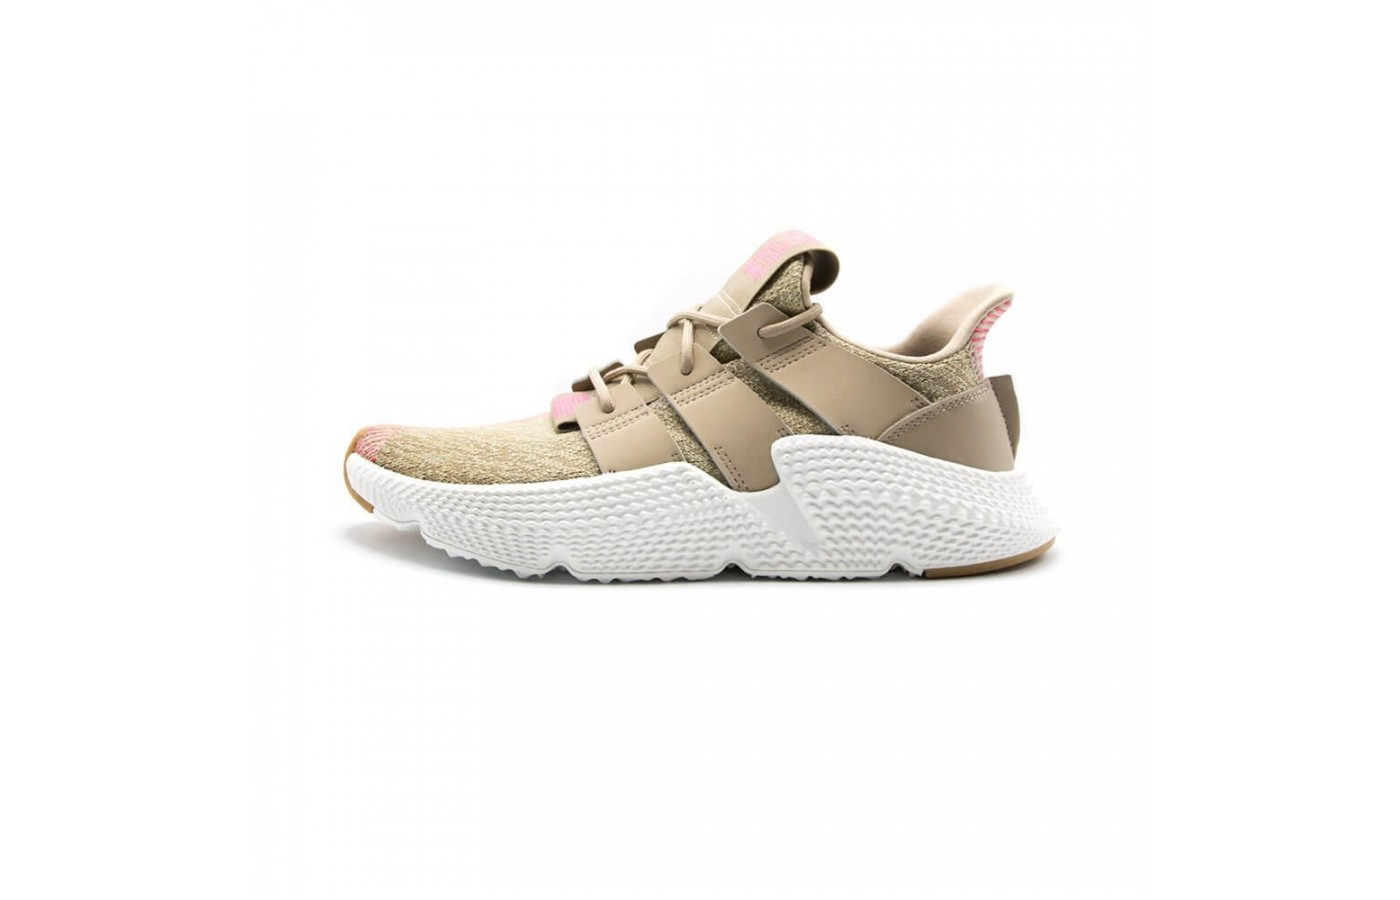 ... The Adidas Prophere comes in many different colorways ... d1358e0b3